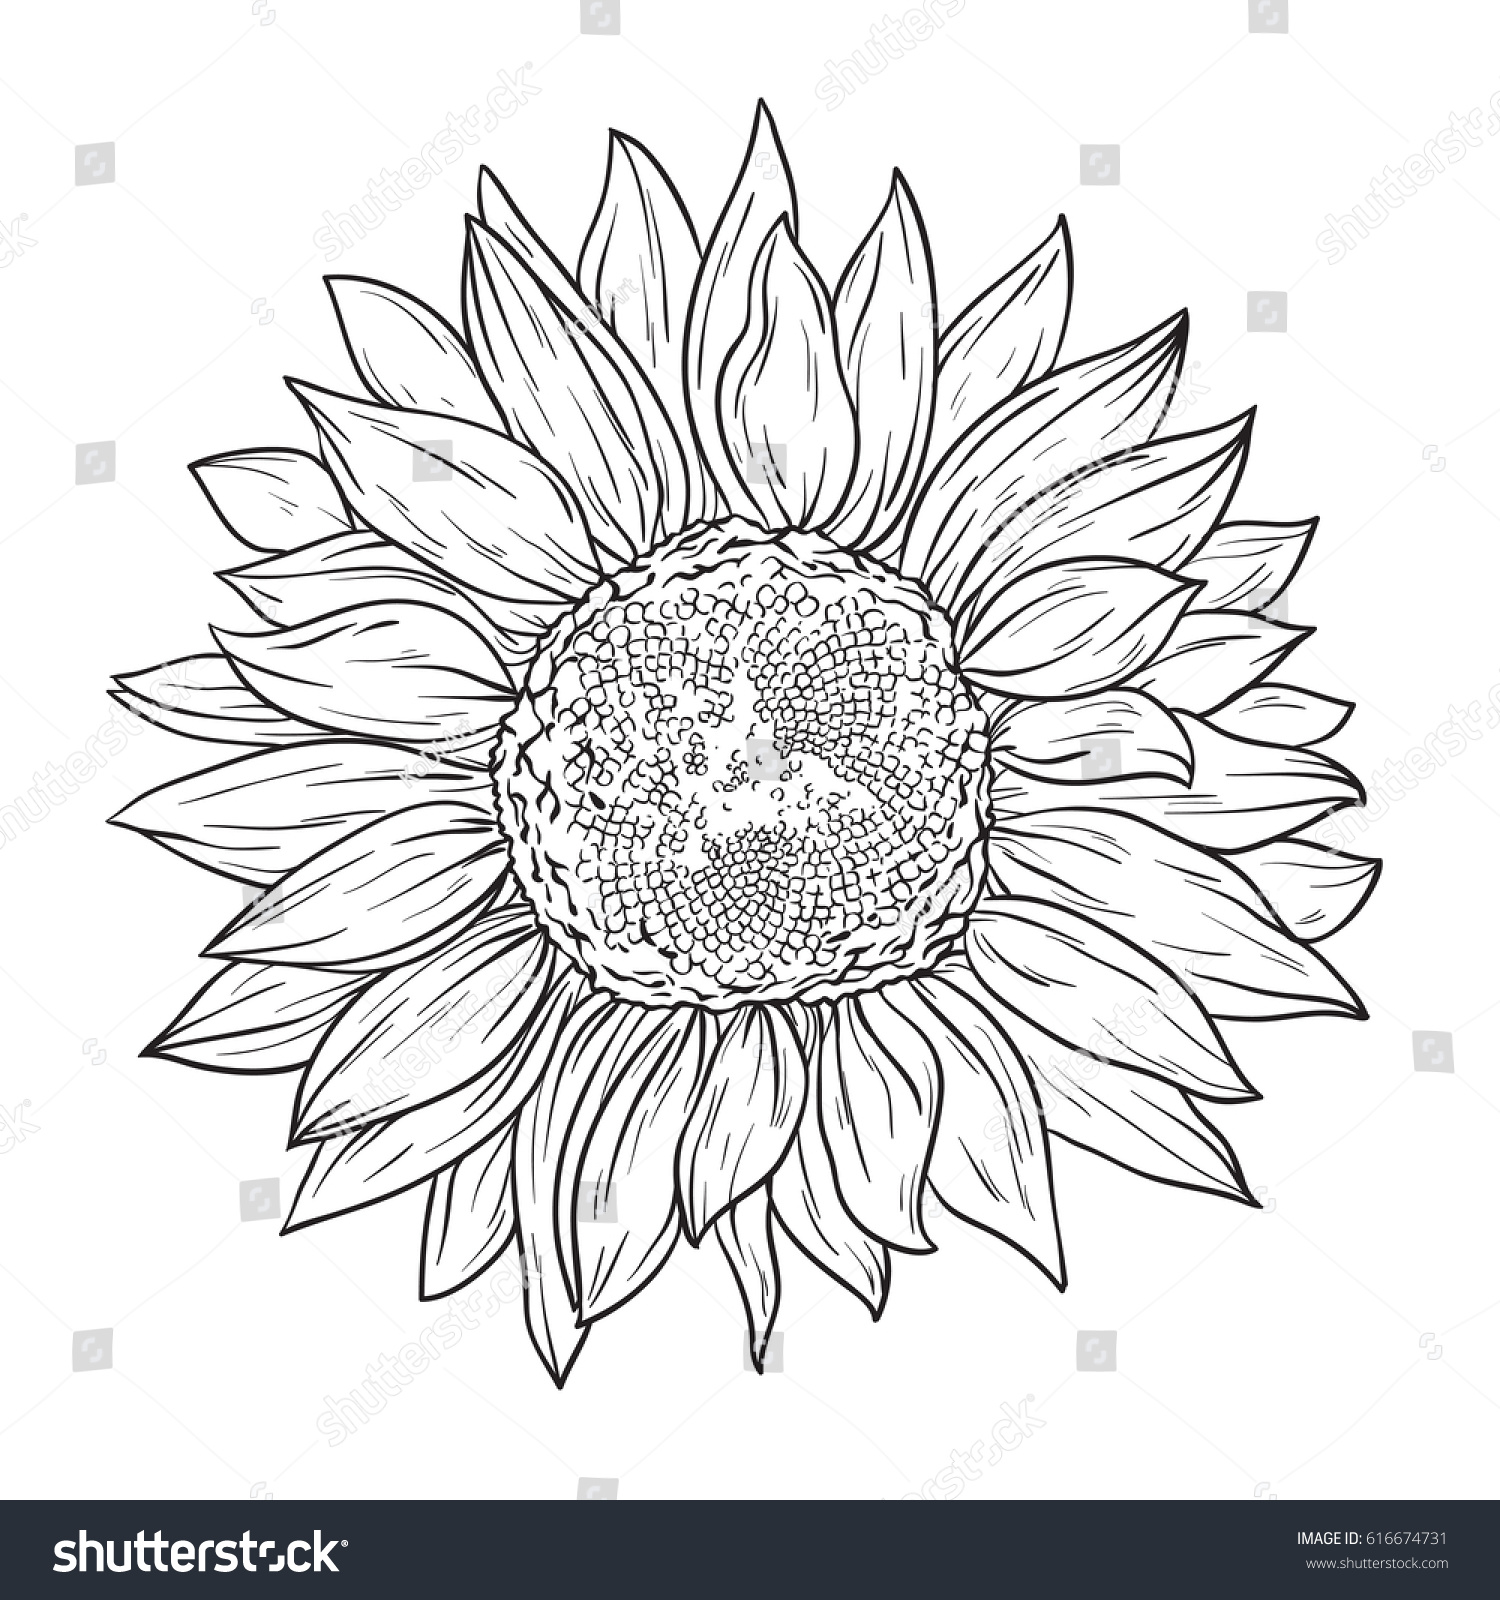 Sunflower In Lines Line Art Style Isolated On White Background Coloring Book